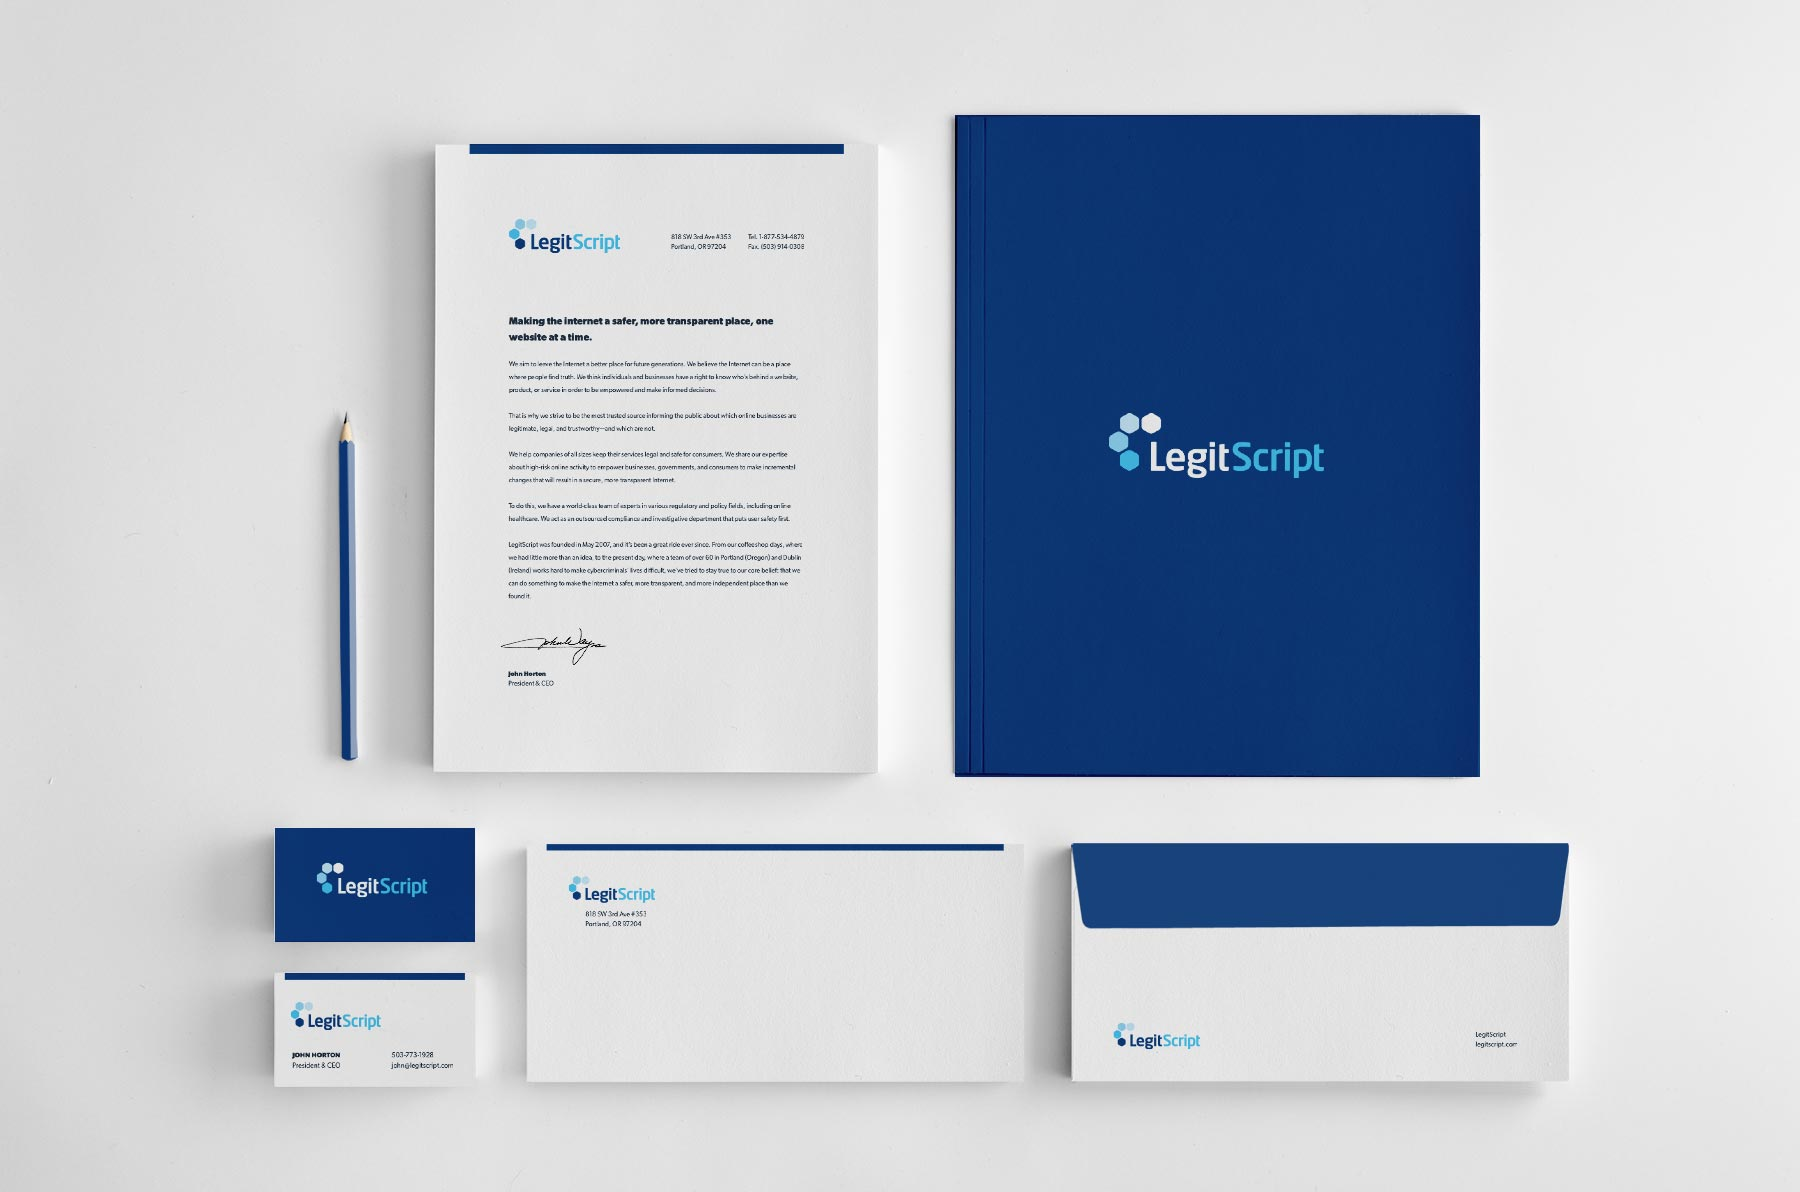 LegitScript brand samples